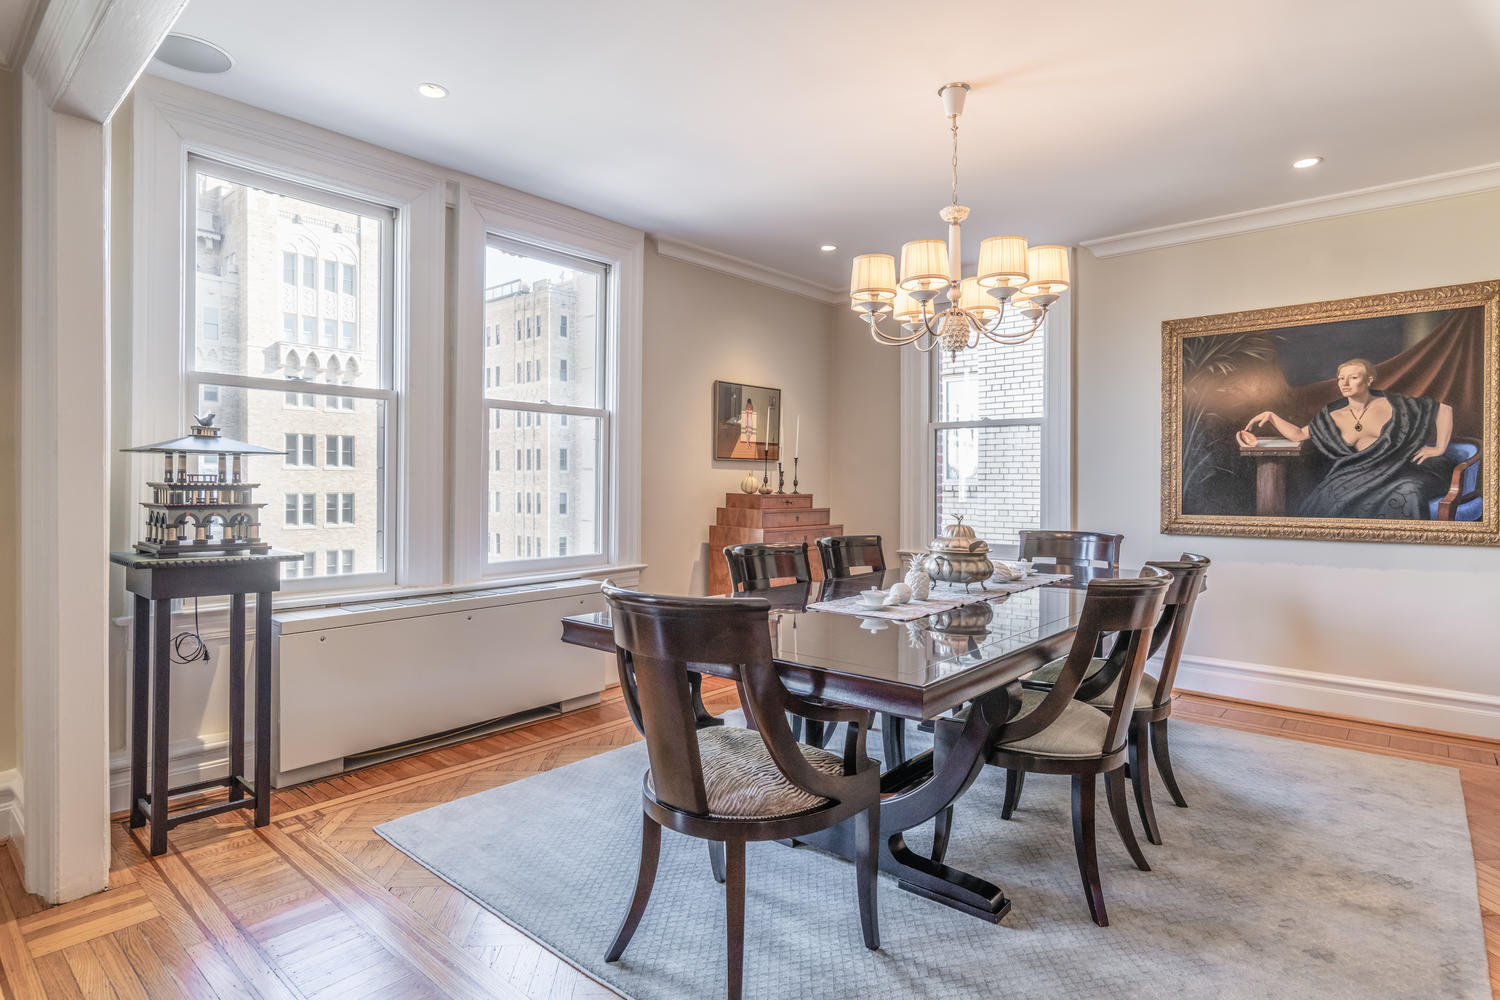 Formal Dining Room with views of distinguished architecture